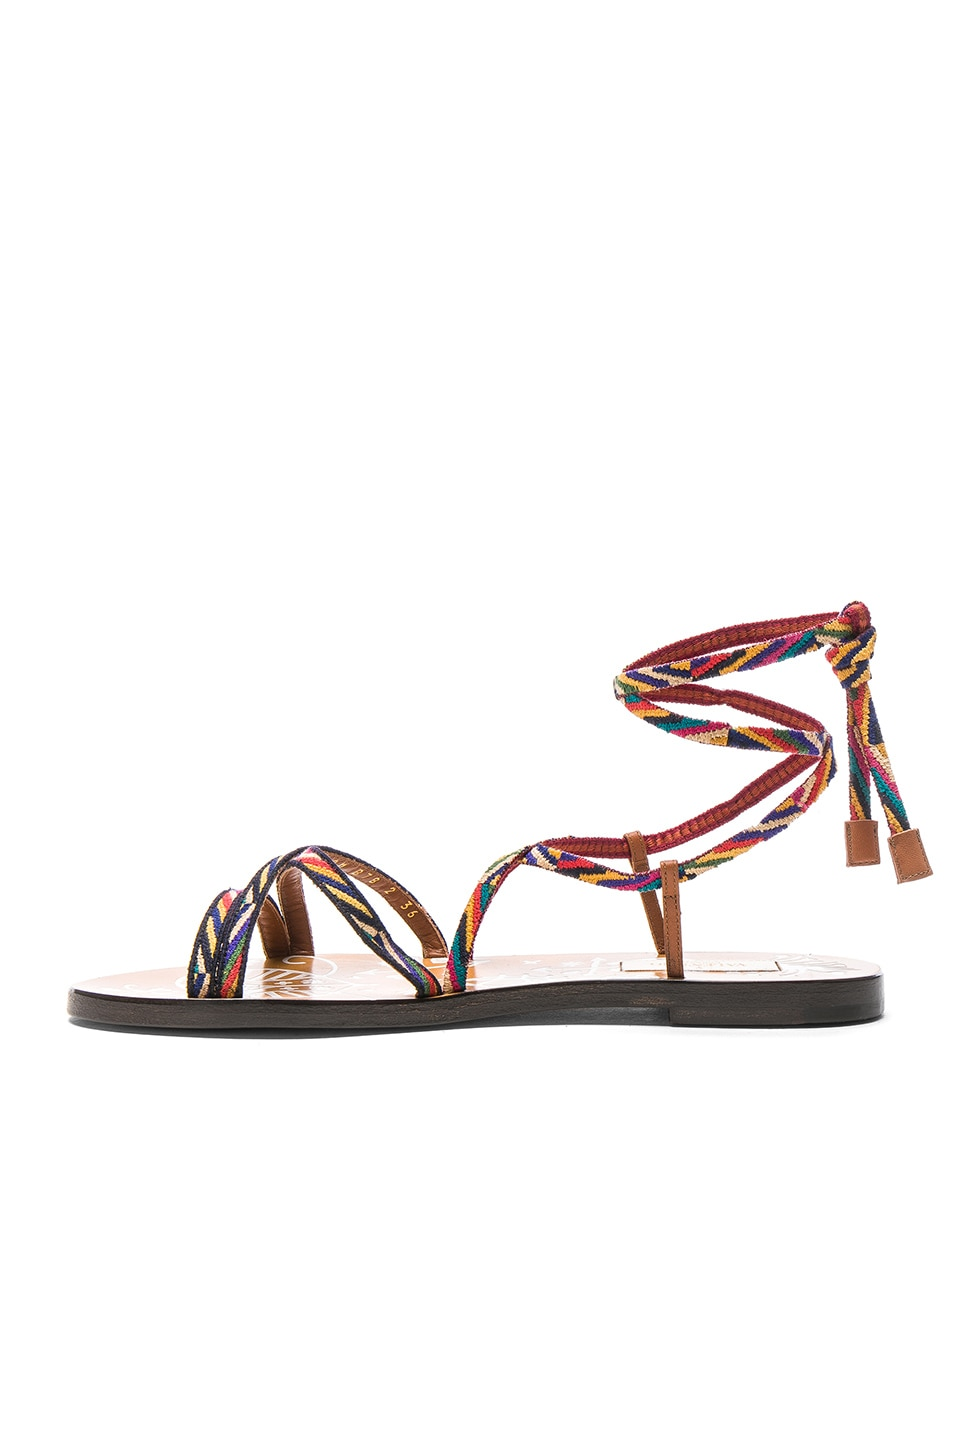 Image 5 of Valentino Embroidered Santeria Sandals in Multi